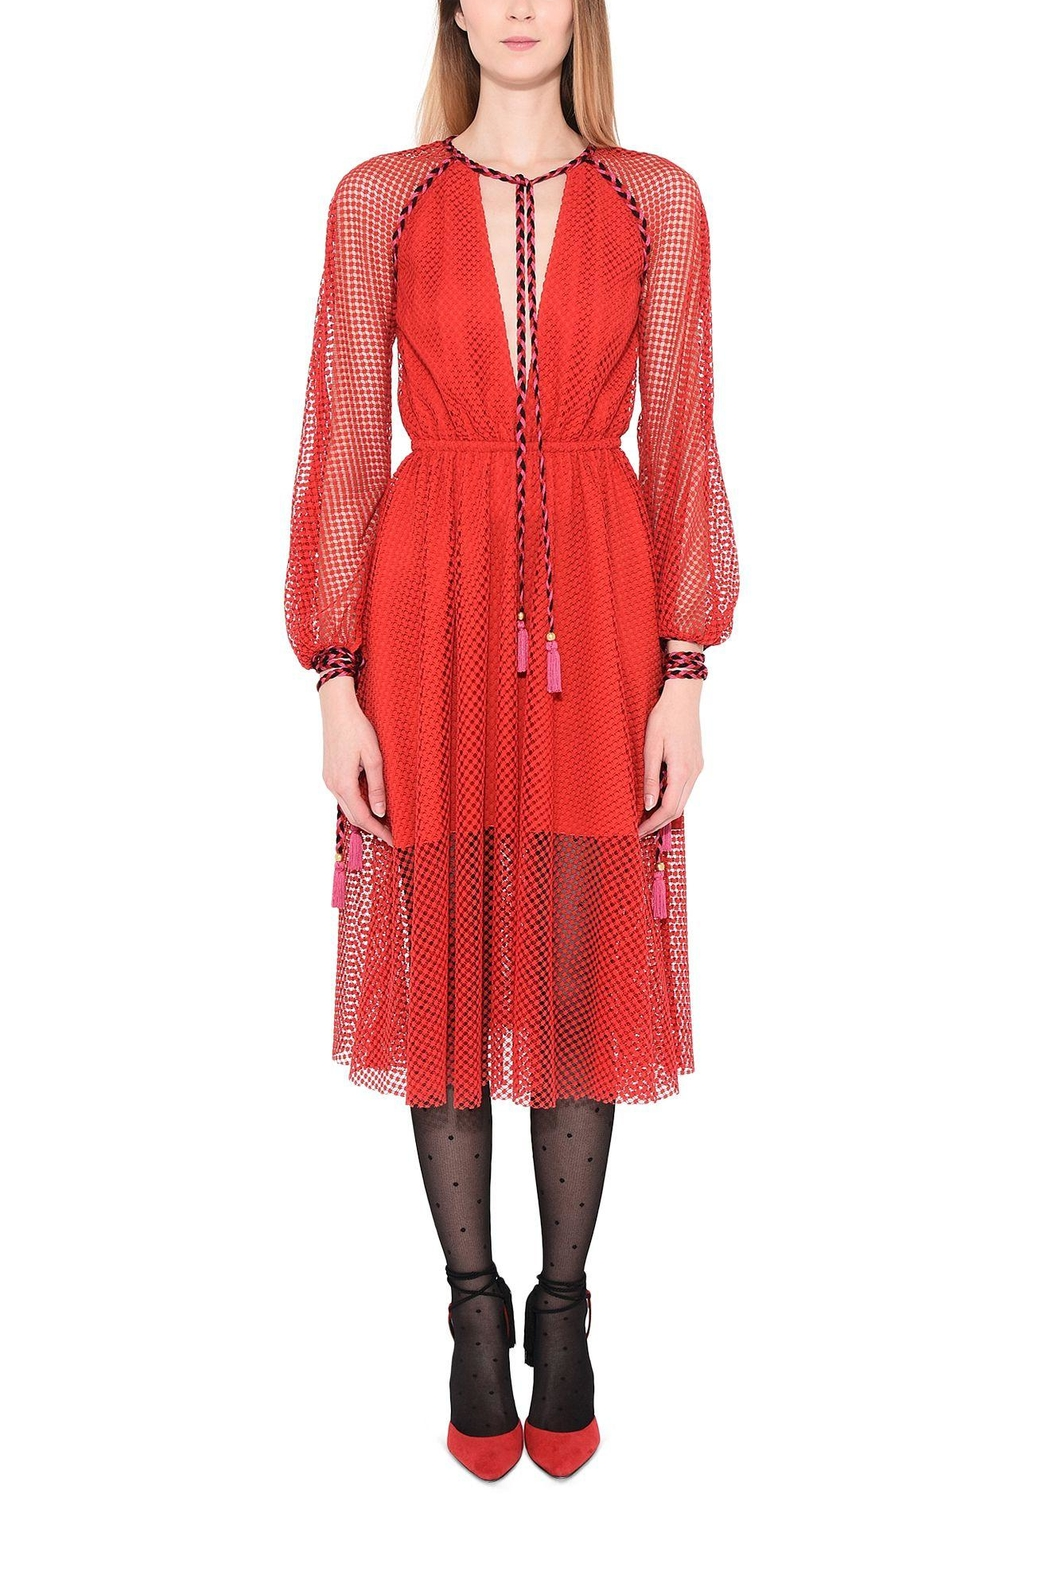 Philosophy di Lorenzo Serafini Red Lace Dress - Back Cropped Image